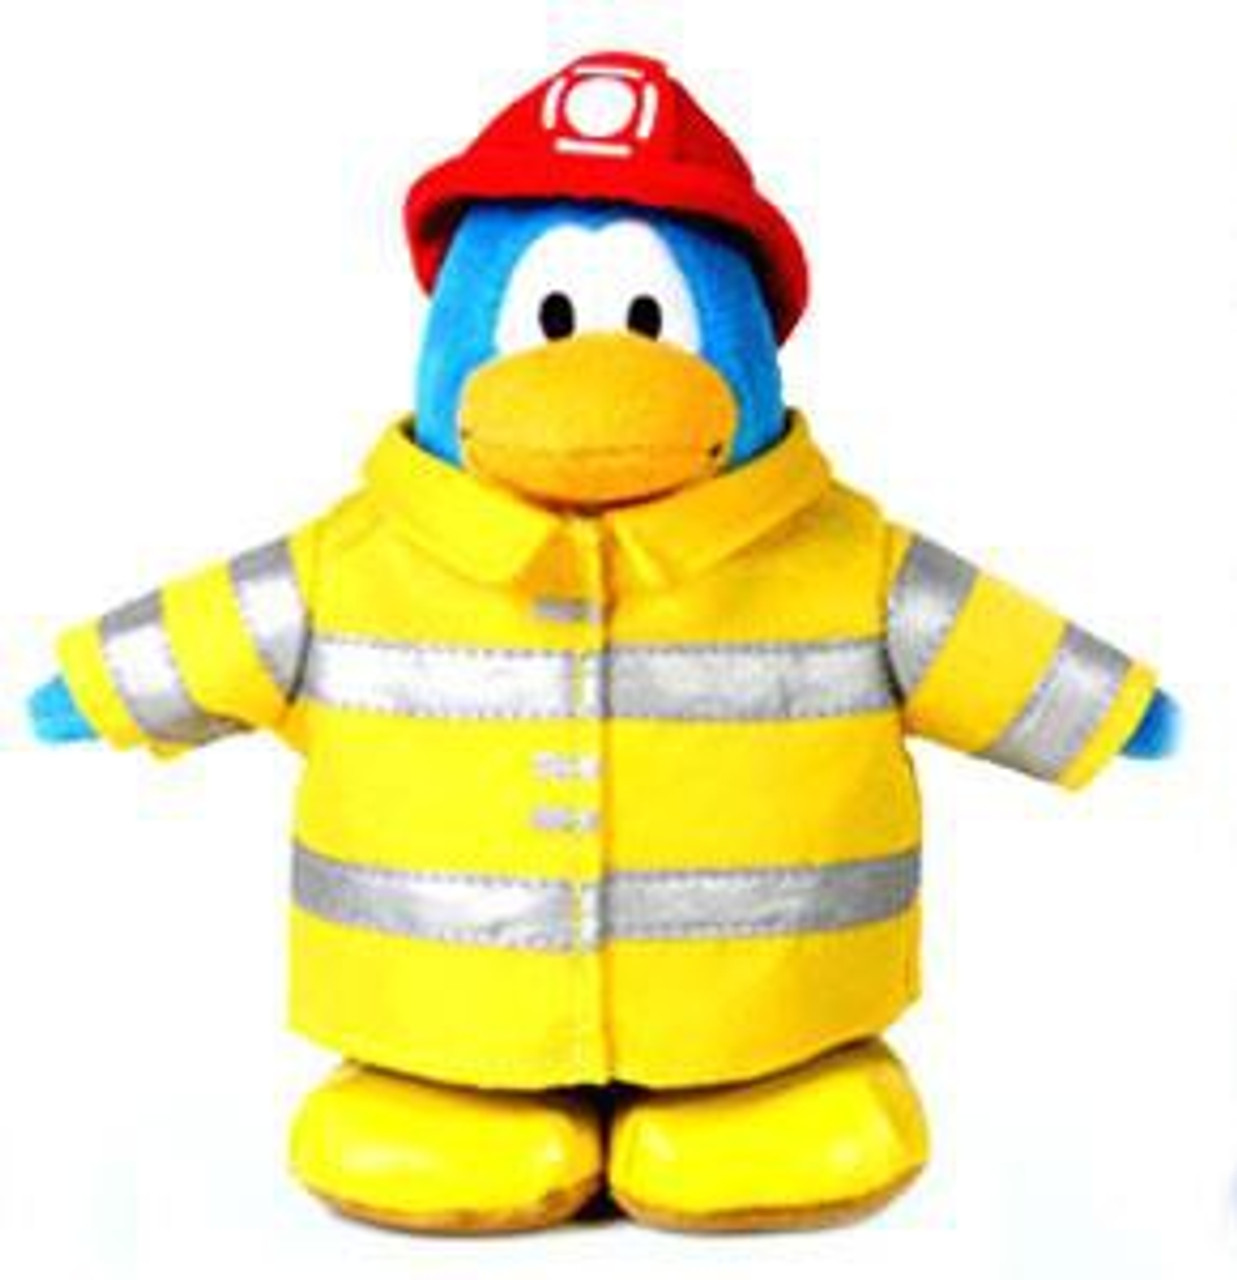 Club Penguin Series 1 Firefighter 6.5-Inch Plush Figure